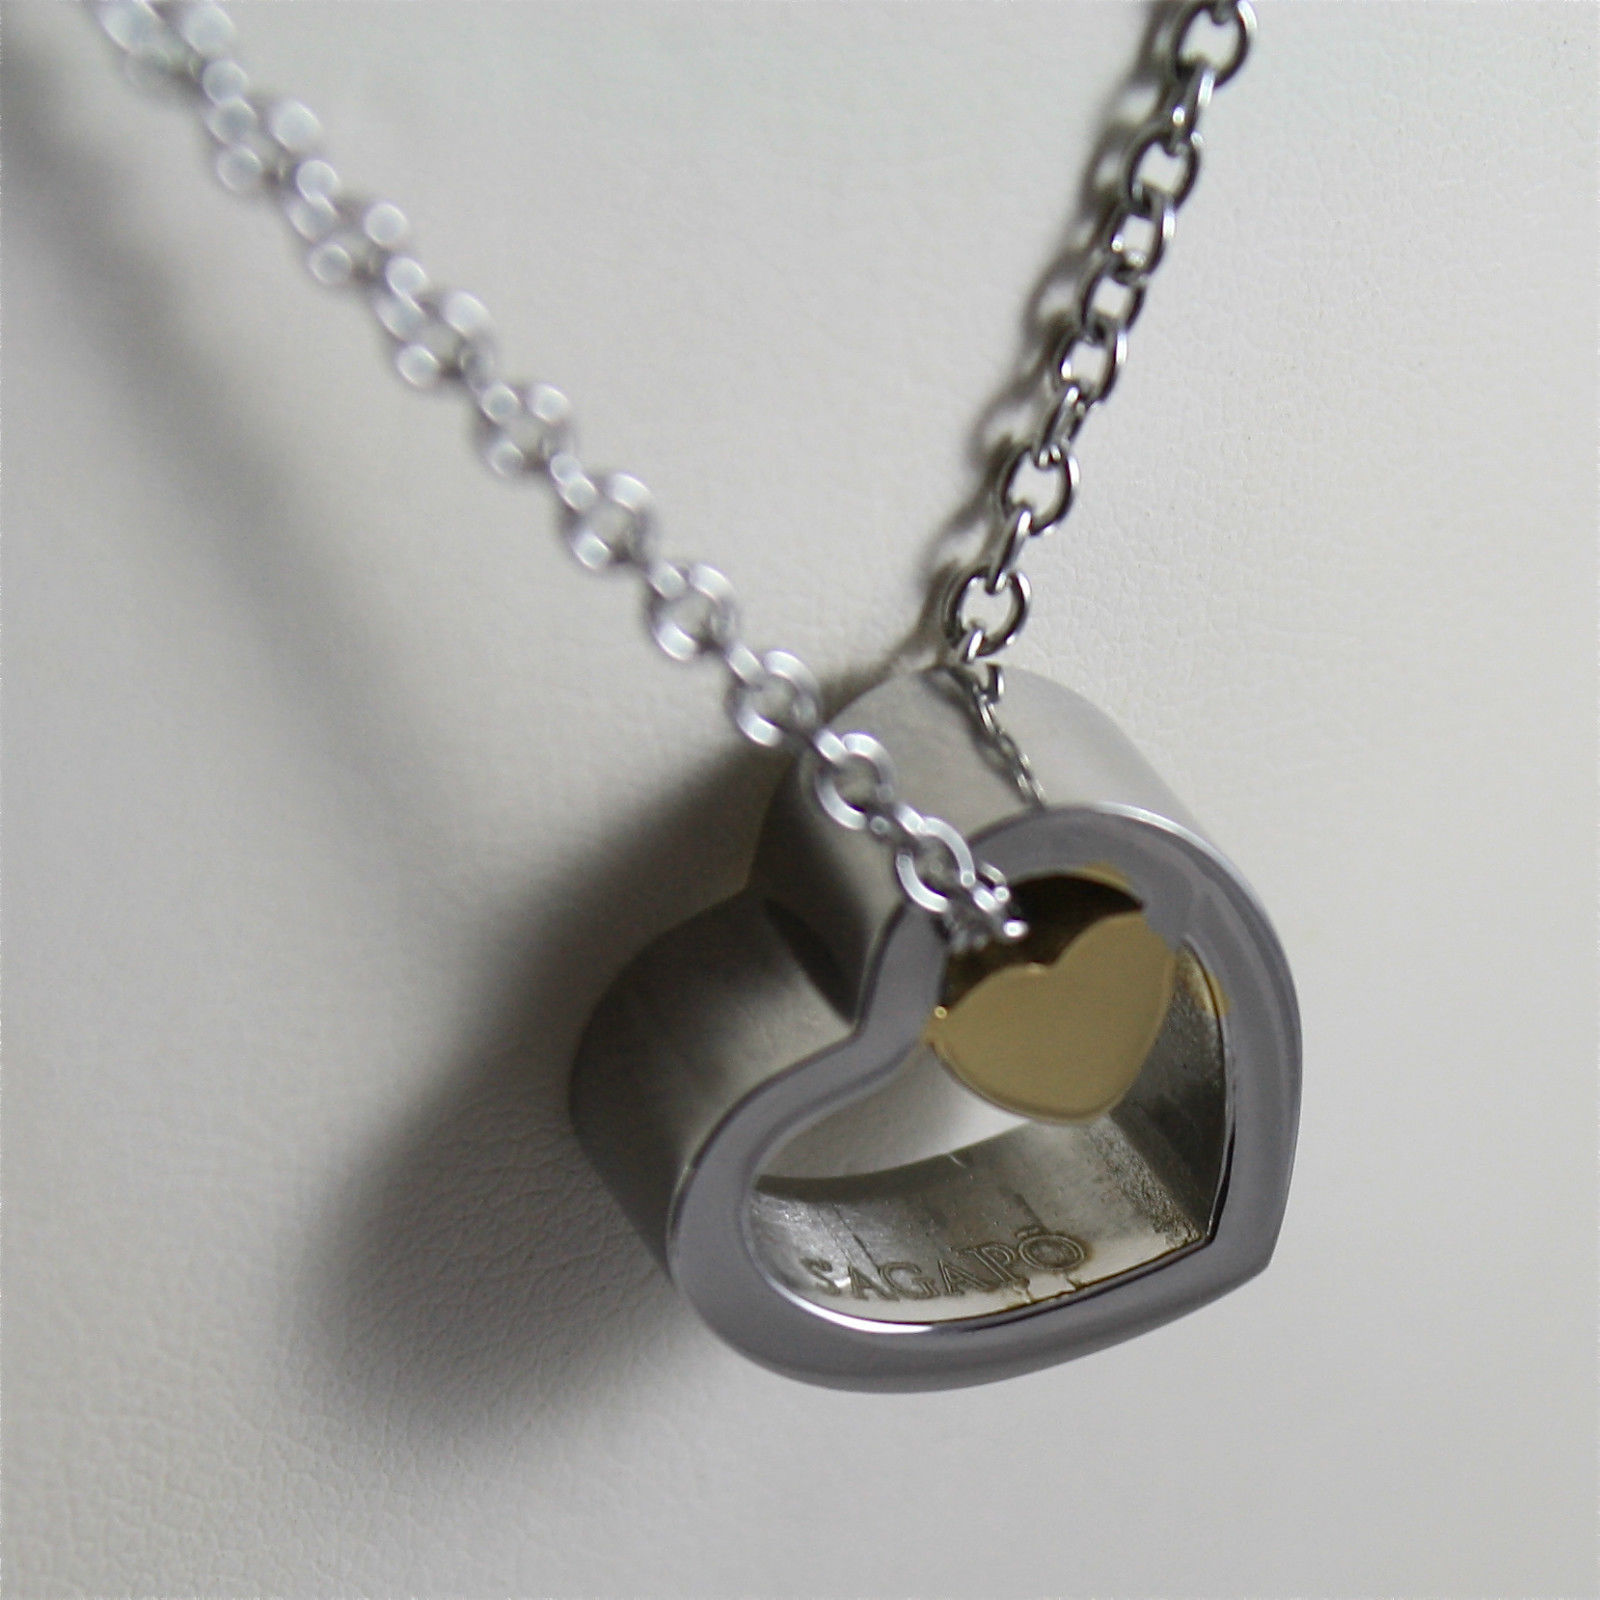 S'AGAPO' NECKLACE, 316L STEEL, PLATED LITTLE HEART IN BIG HEART.